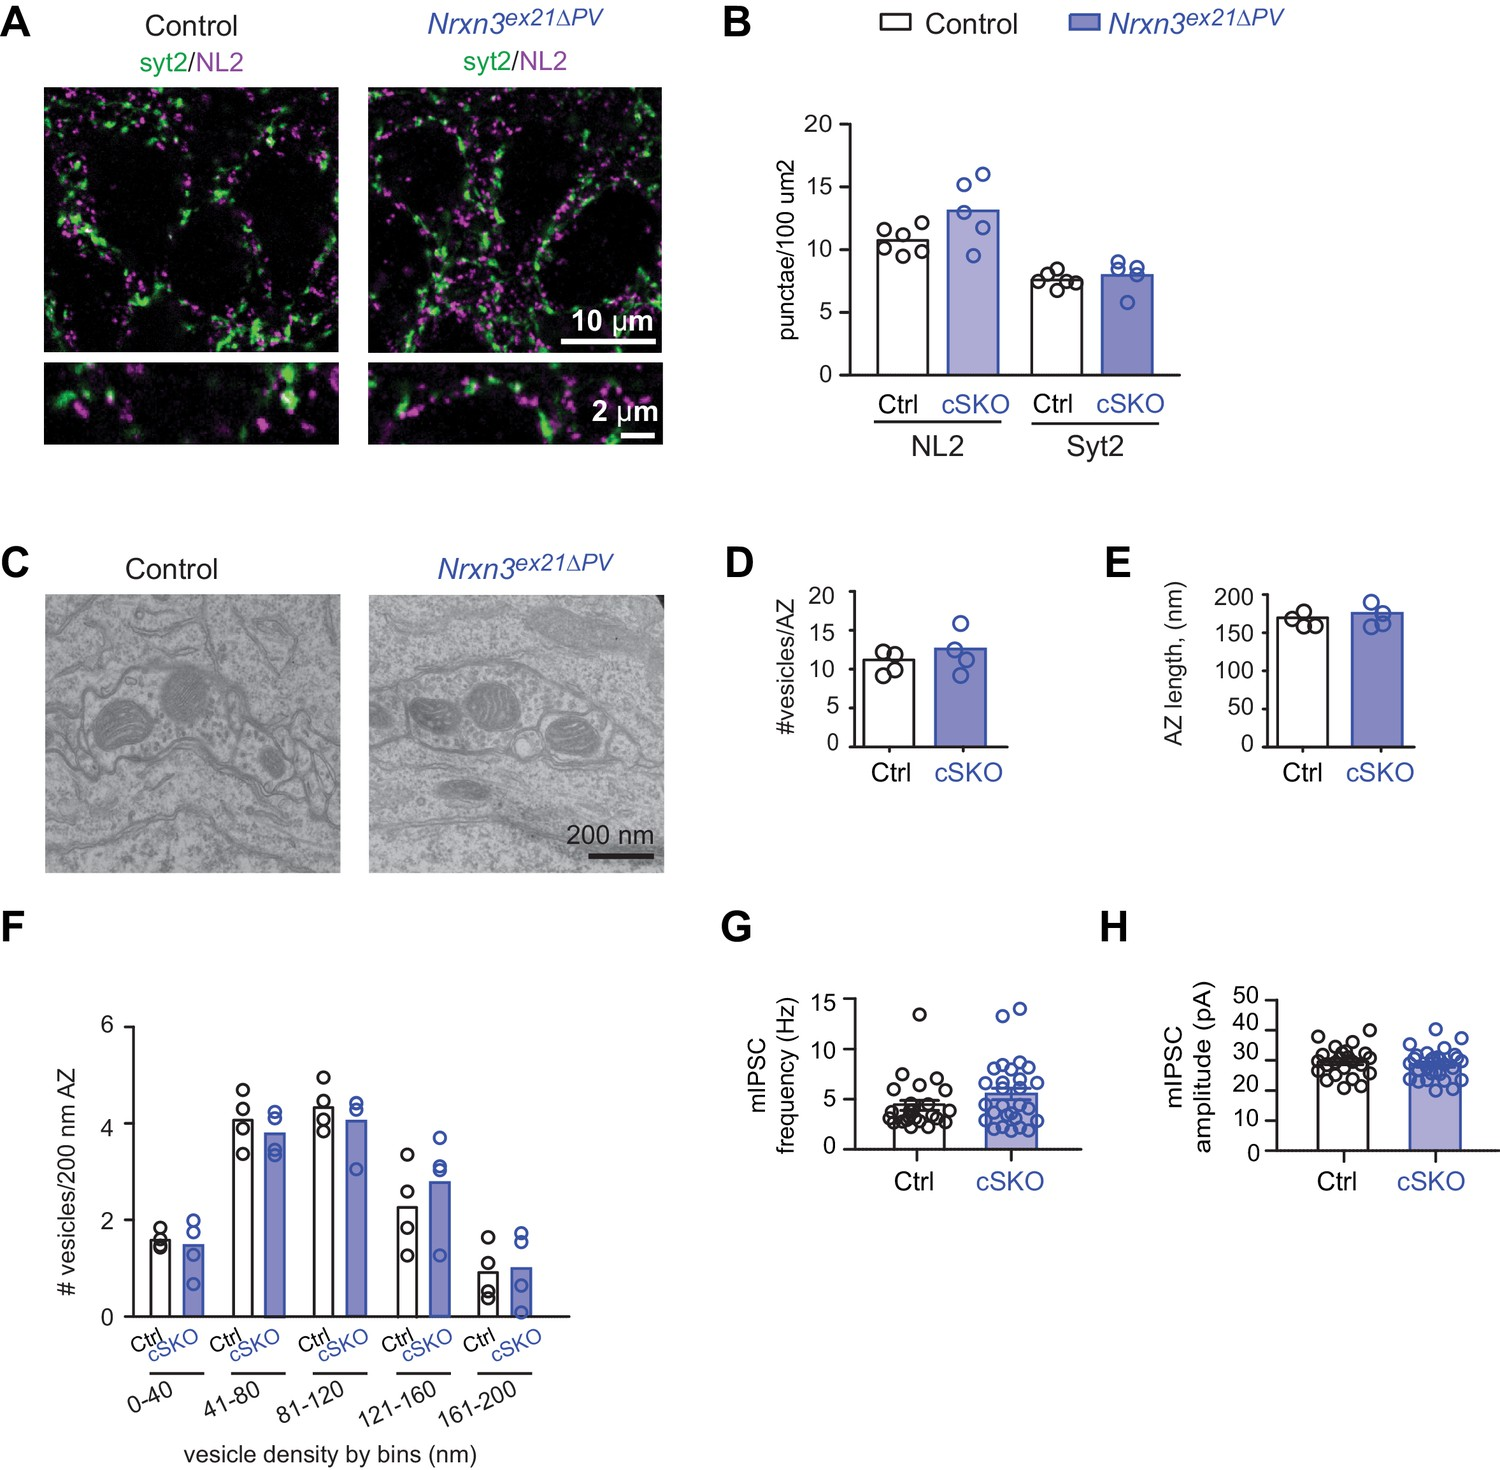 An Alternative Splicing Switch Shapes Neurexin Repertoires In Besides Telephone Phone Line Wiring Diagram Moreover How To Splice Cat Analysis Of Pv Specific Nrxn3ex21pv Single Conditional Knock Out Mice